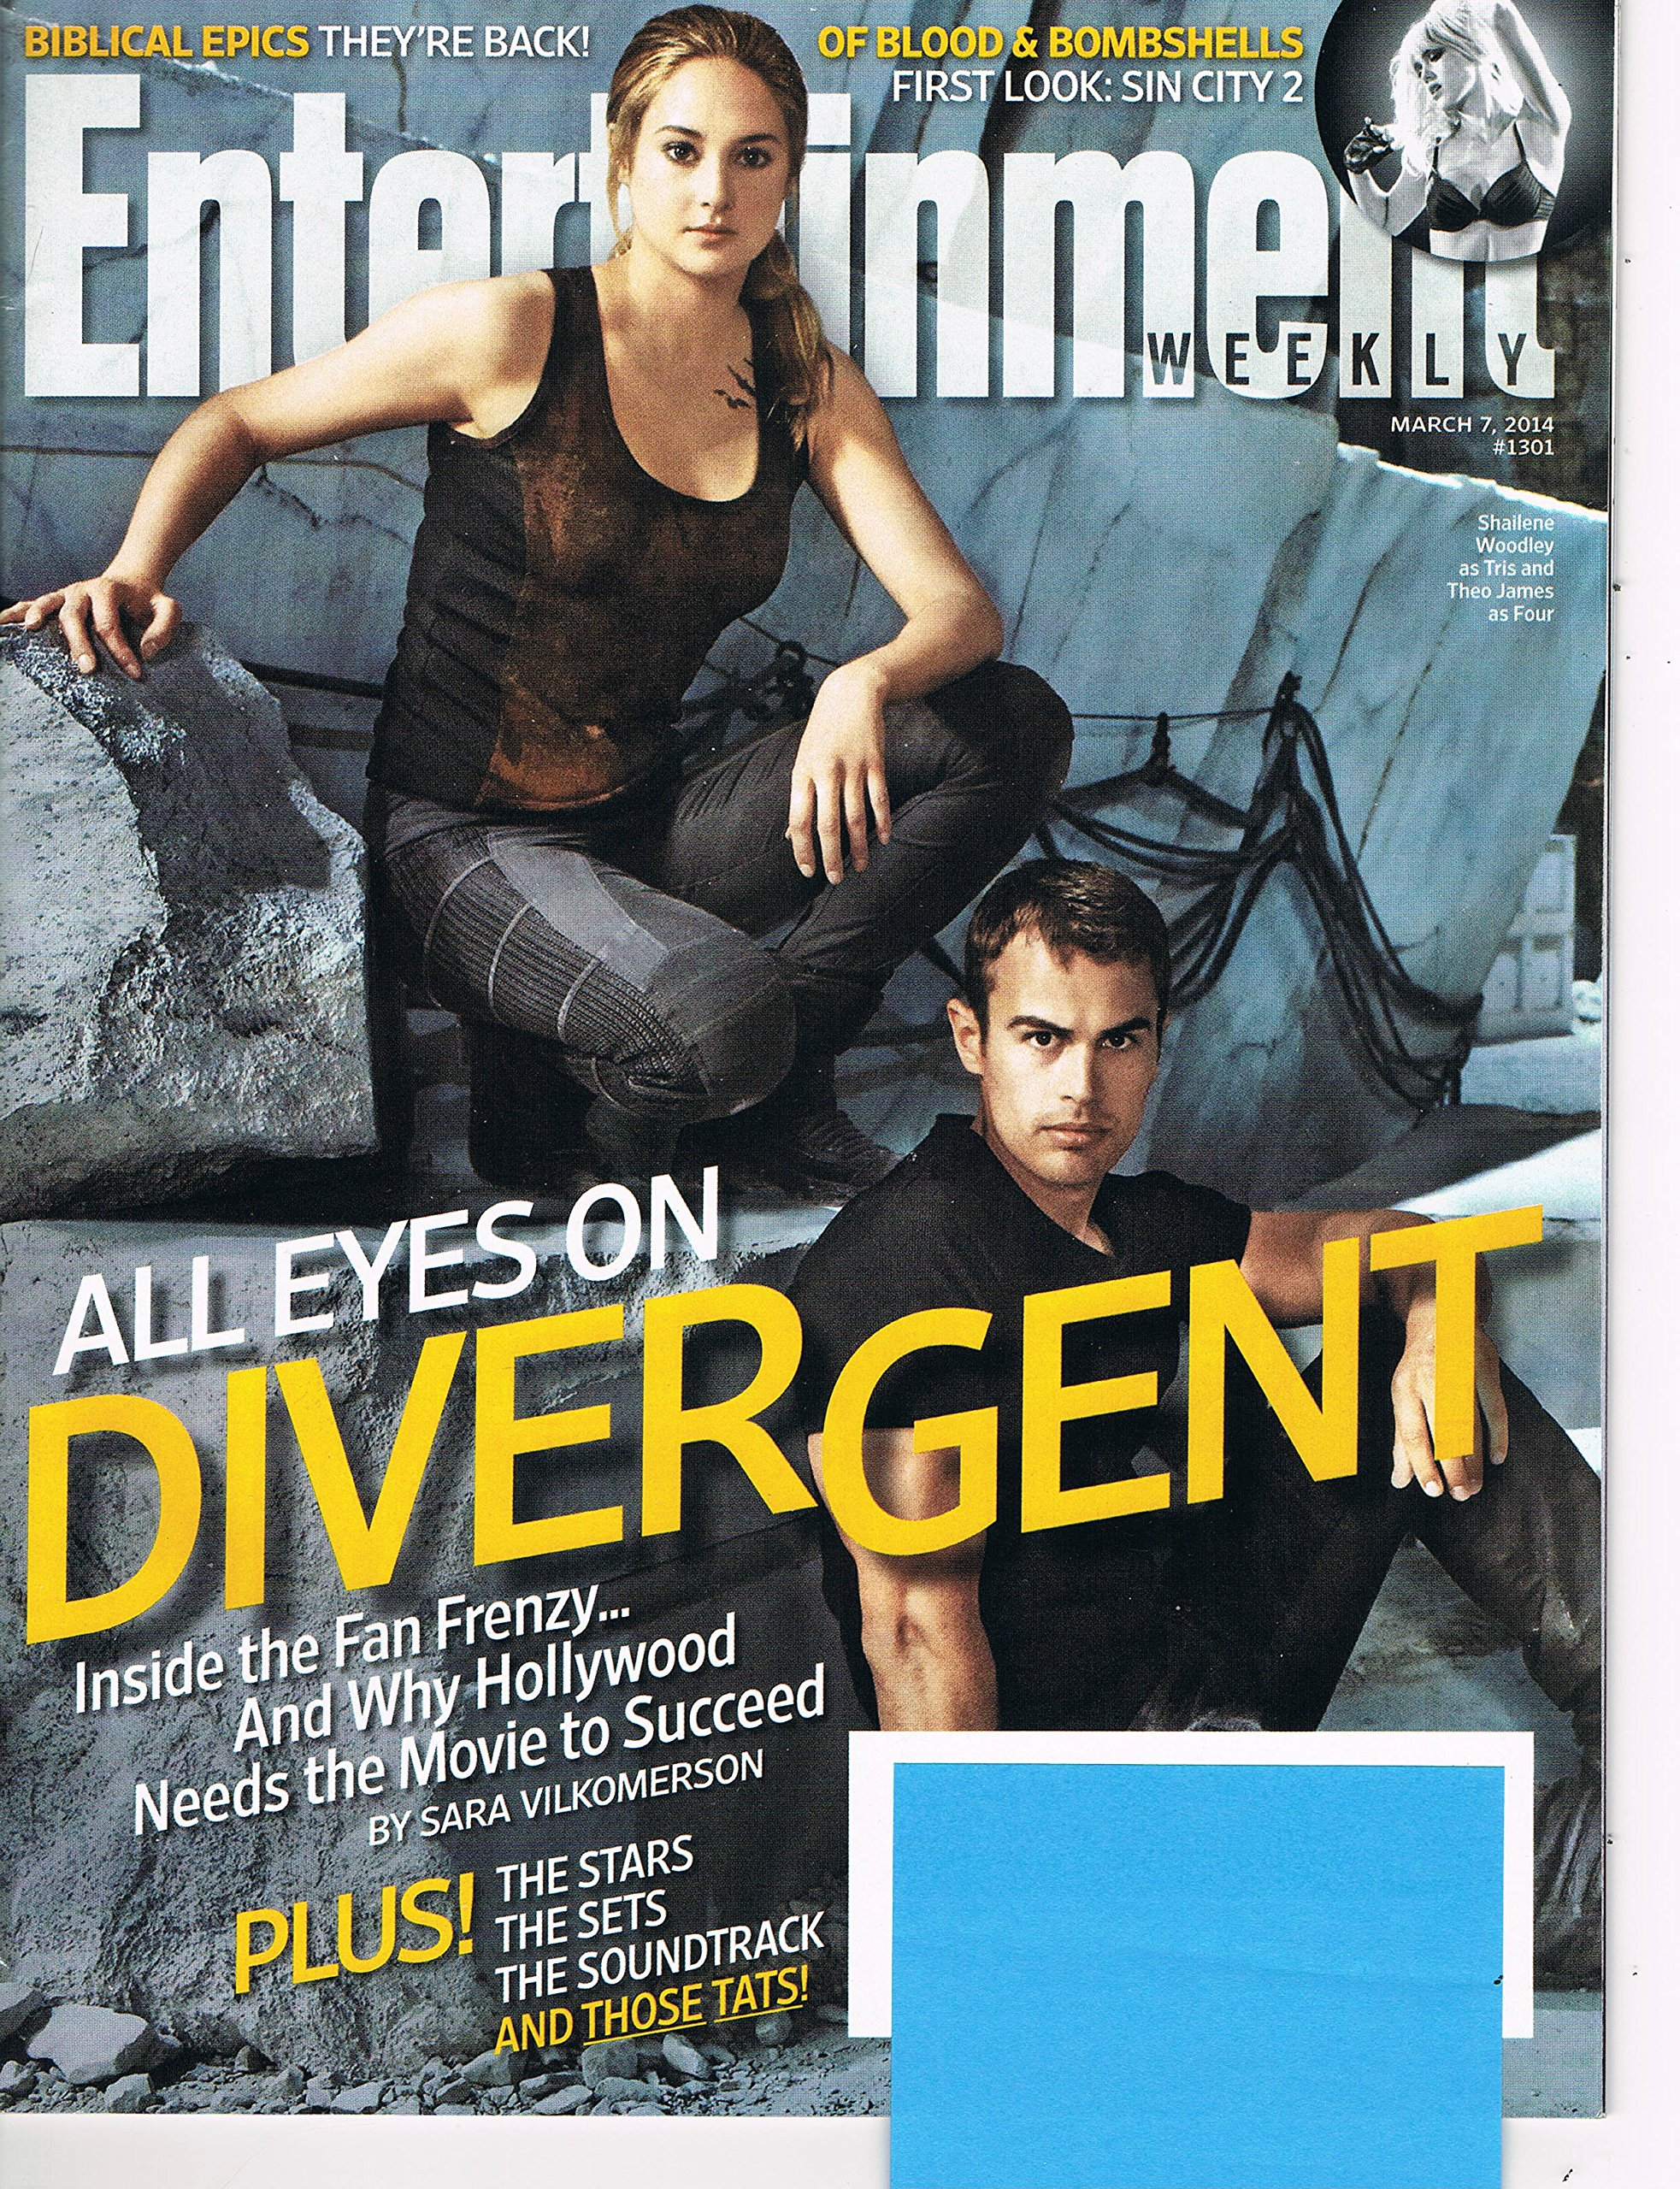 Entertainment Weekly March 7, 2014 Shailene Woodley and Theo James All Eyes on Divergent pdf epub